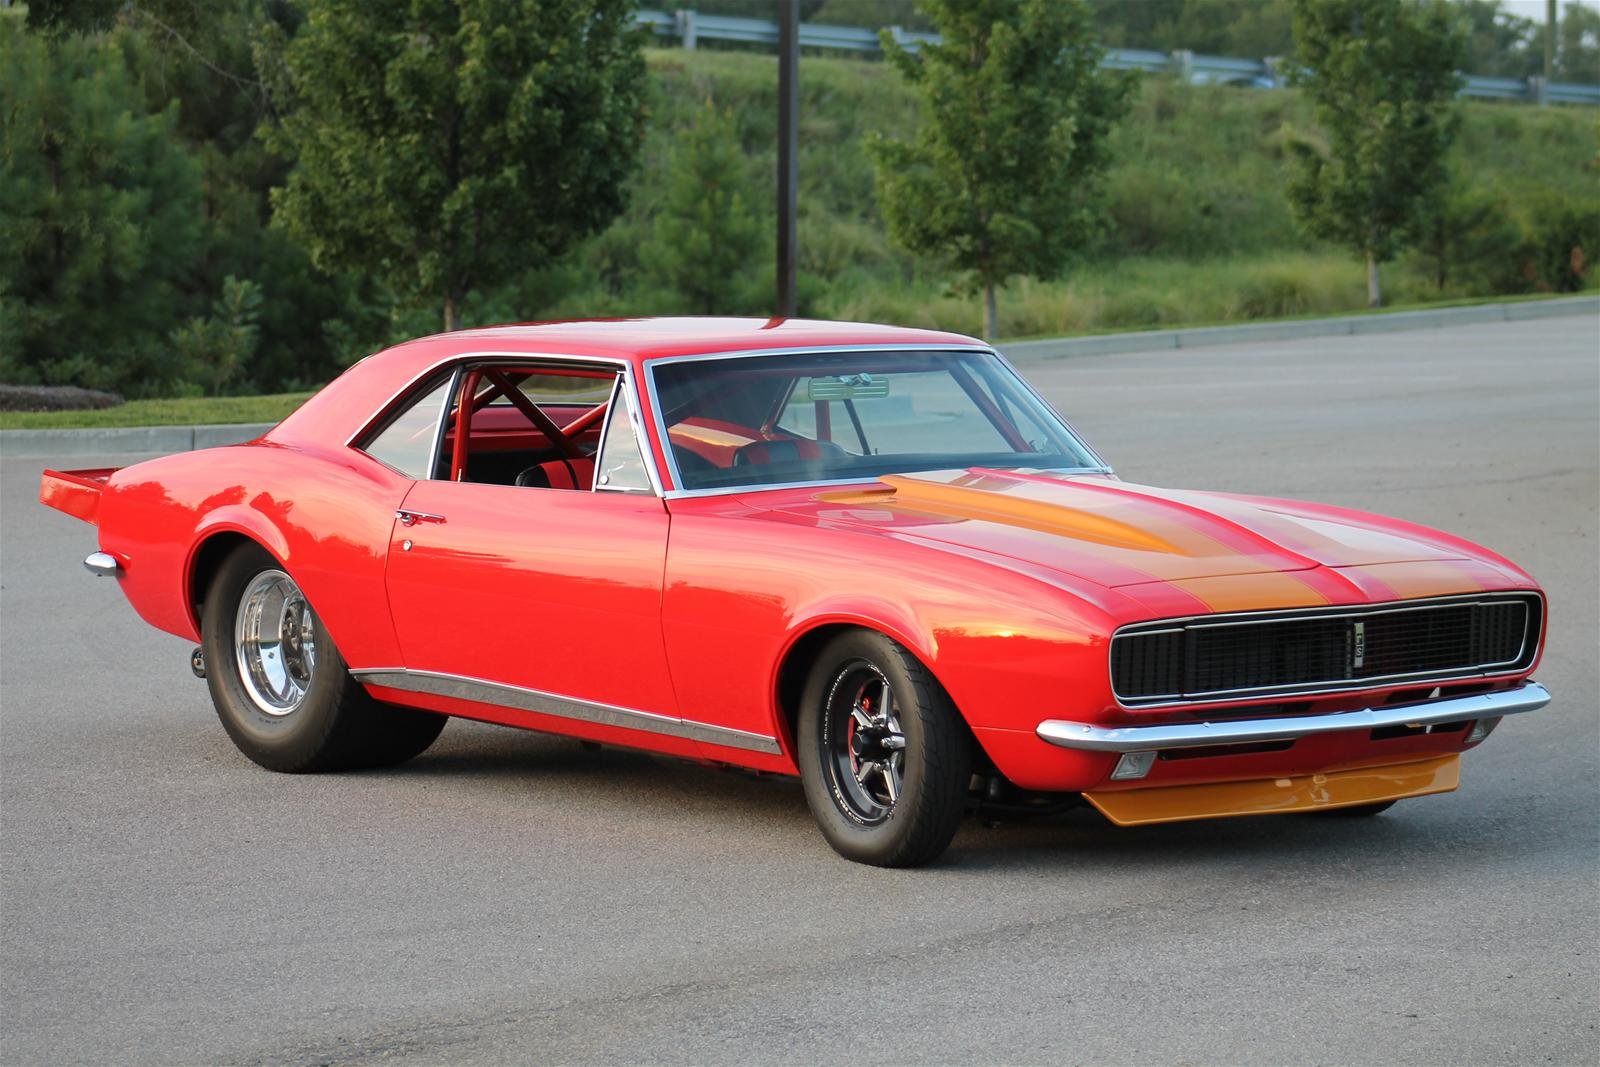 Pro Street 67 Camaro Engine Combos Sum Csummn001 Free Shipping On 1941 Plymouth Orders Over 99 At Summit Racing